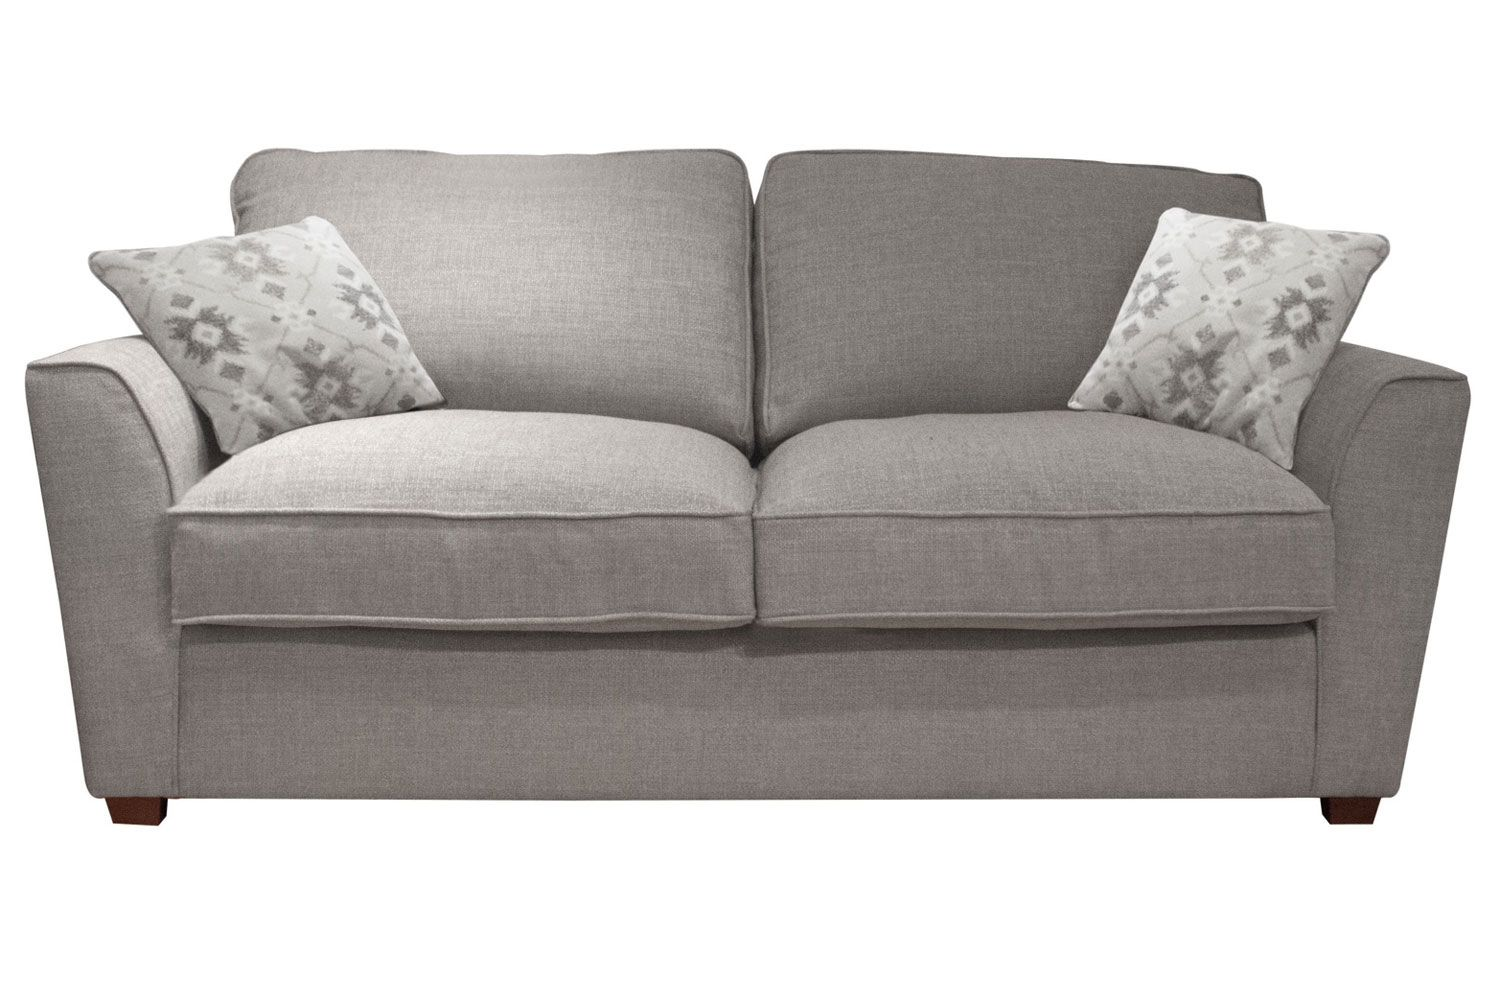 Fantasia Corner Sofa Fabric Sofas Shop At Harvey